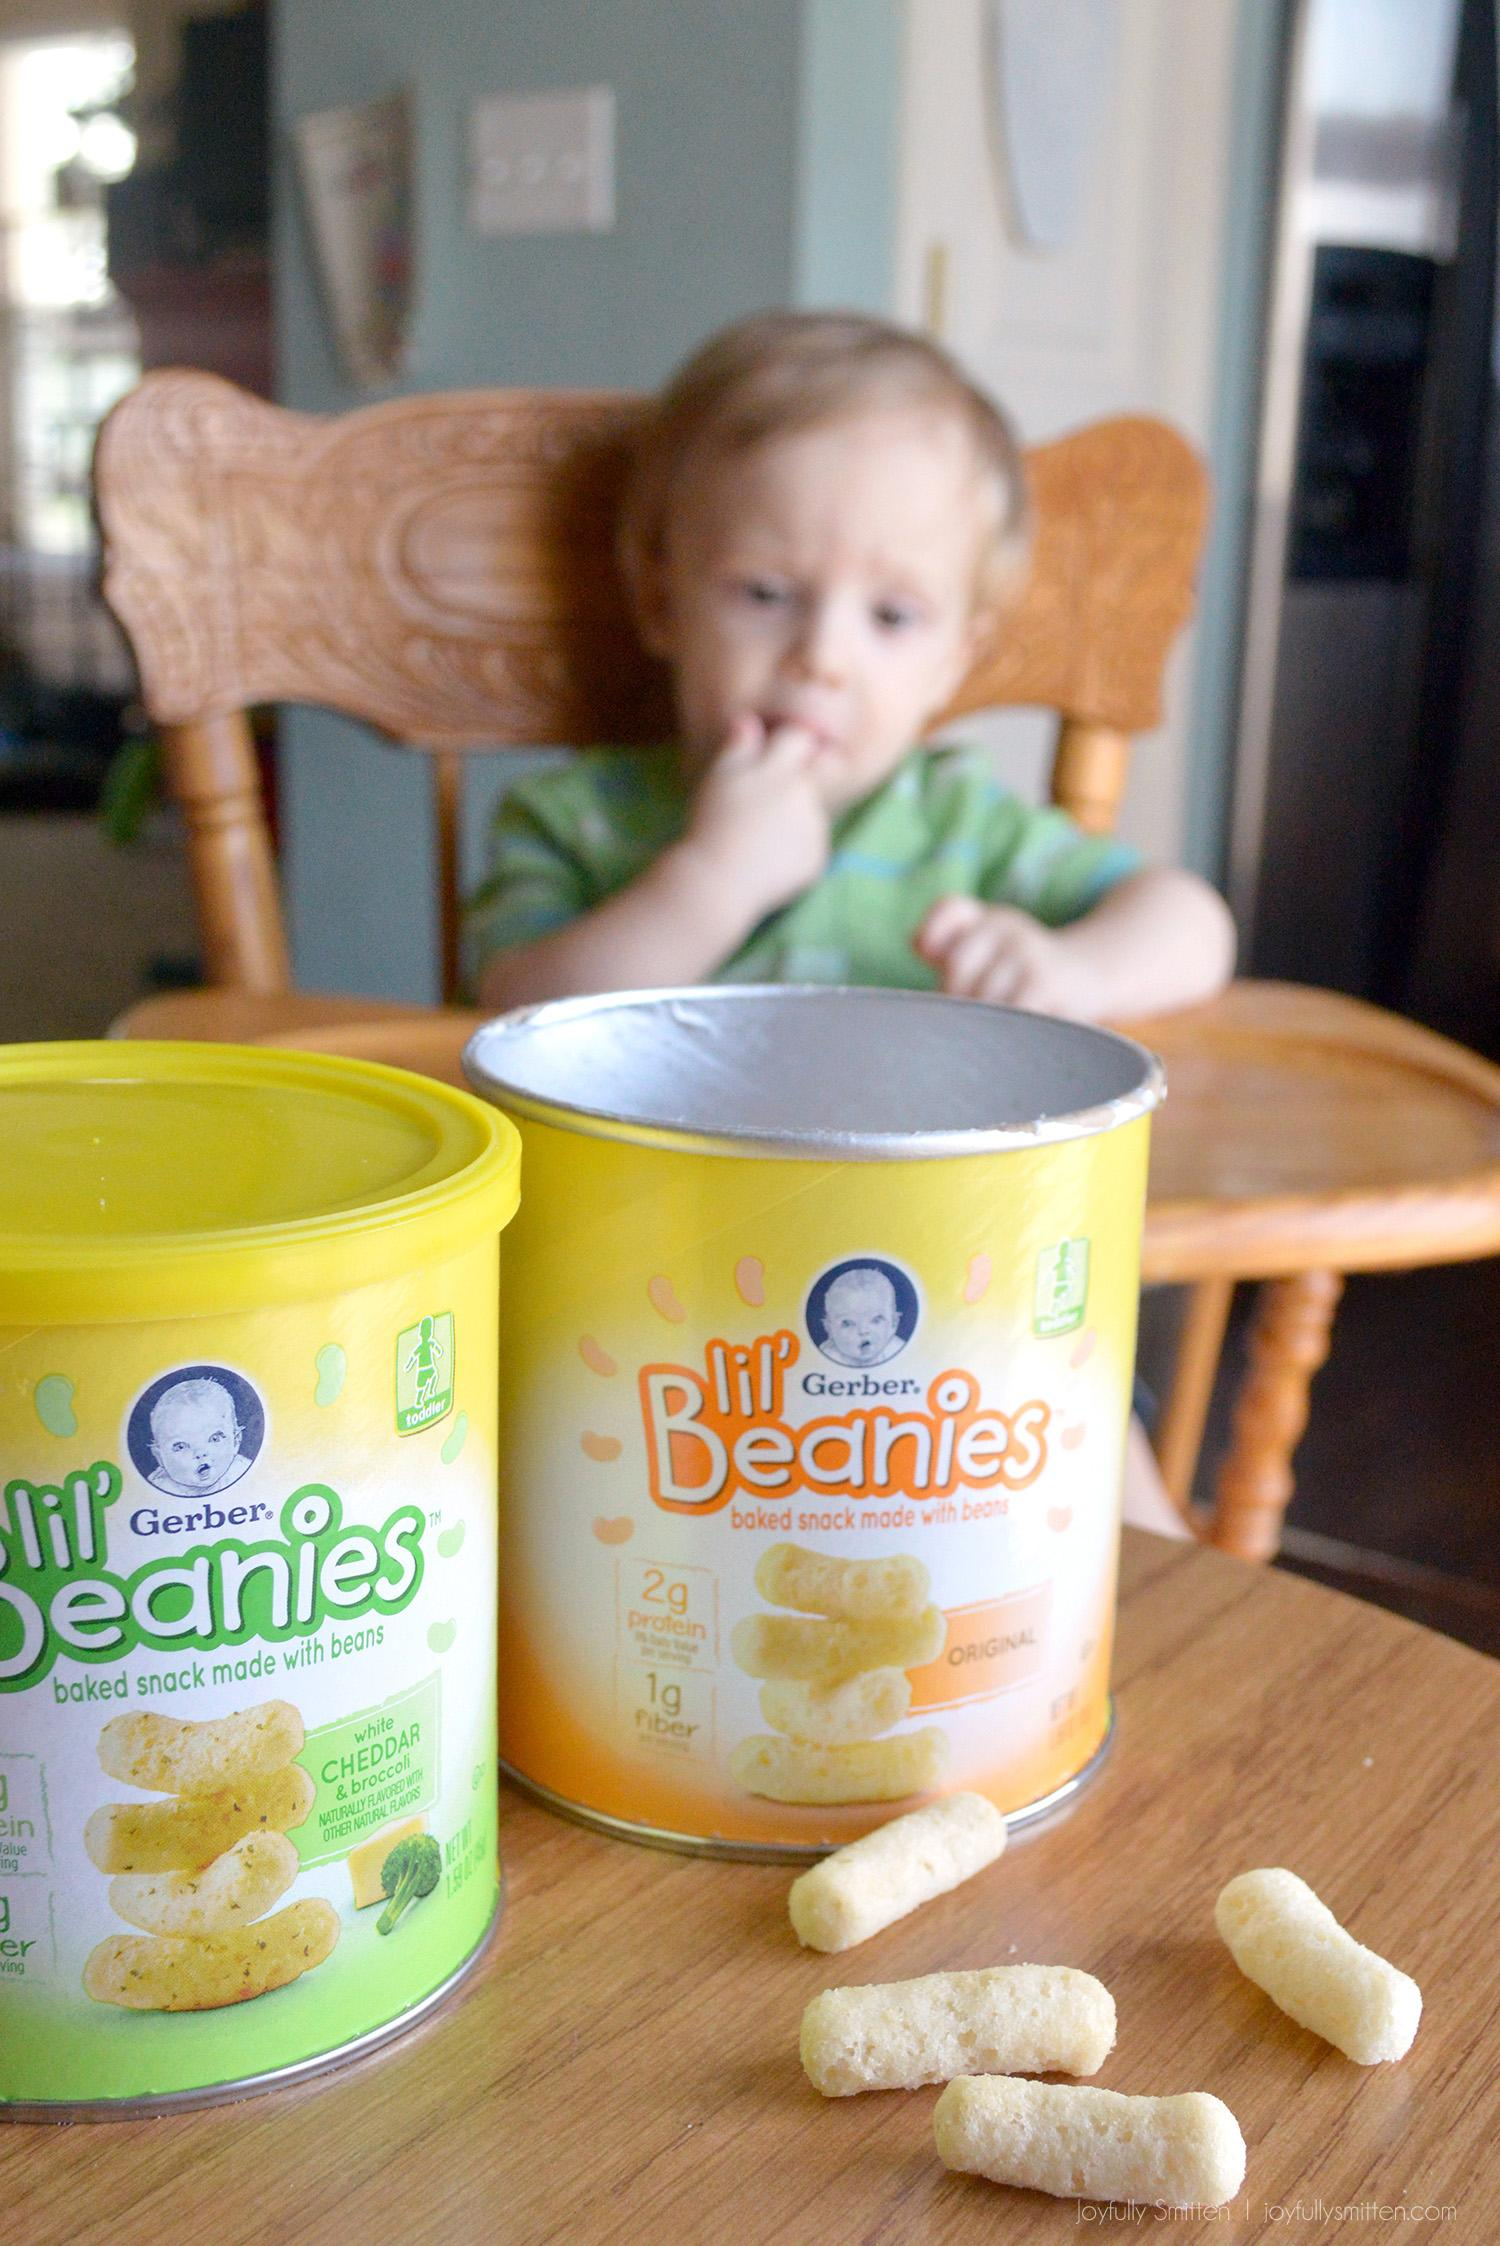 Lil Beanies have 2 grams of protein (9% Daily Value) and 1 gram of fiber per serving and not made with genetically engineered (GM) ingredients.